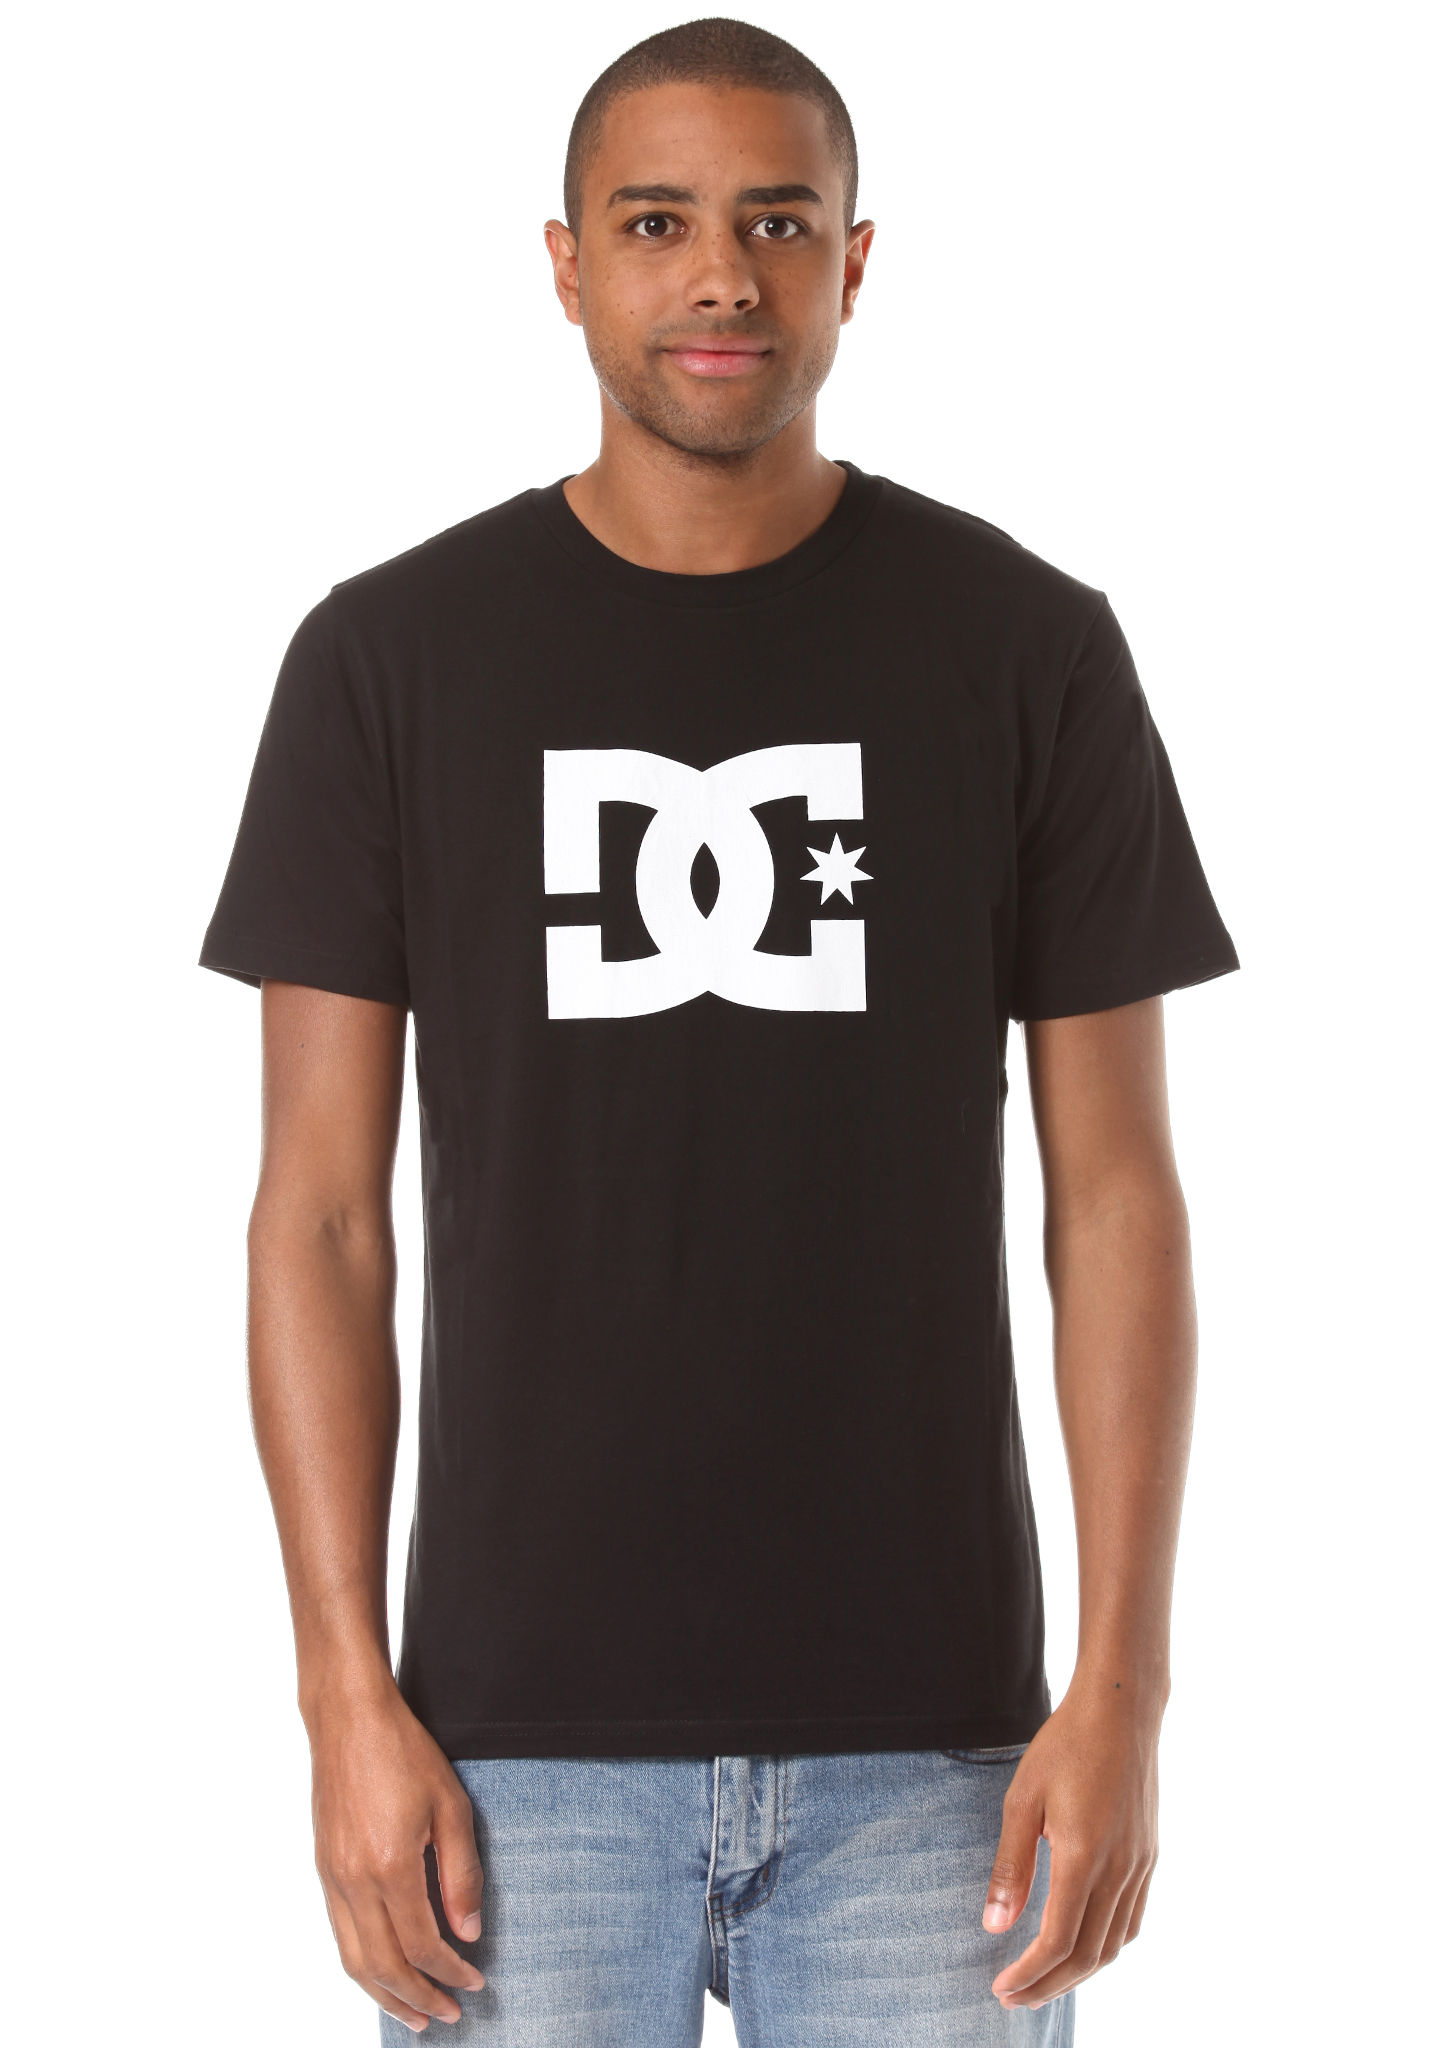 2956f359306 DC Star - T-Shirt for Men - Black - Planet Sports